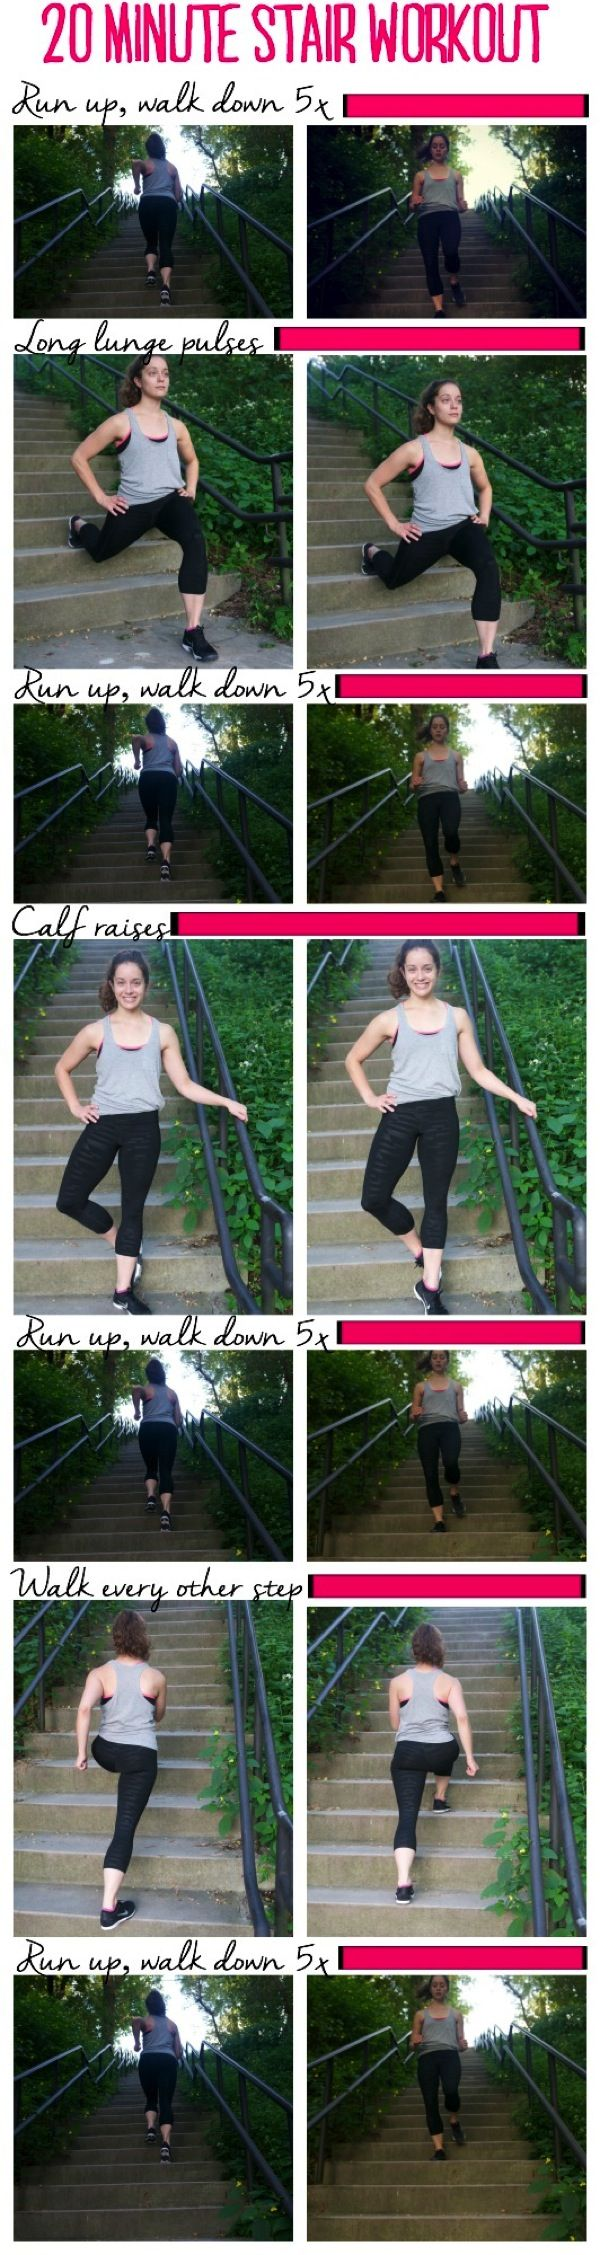 20 Minute Stair Workout